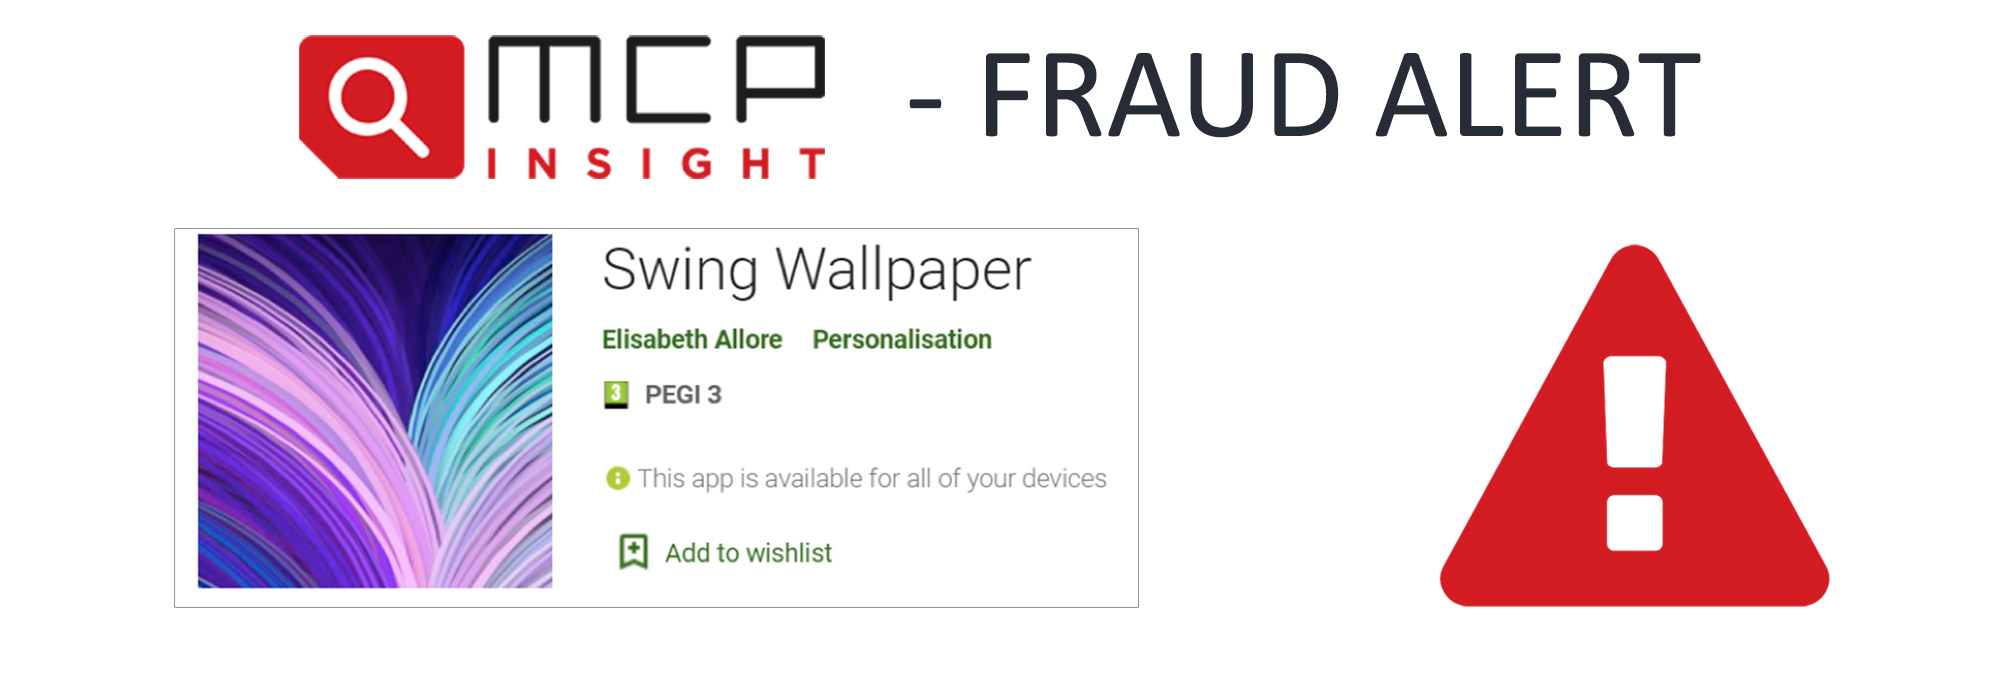 Image of Swing Wallpaper, an MCP Fraud Alert